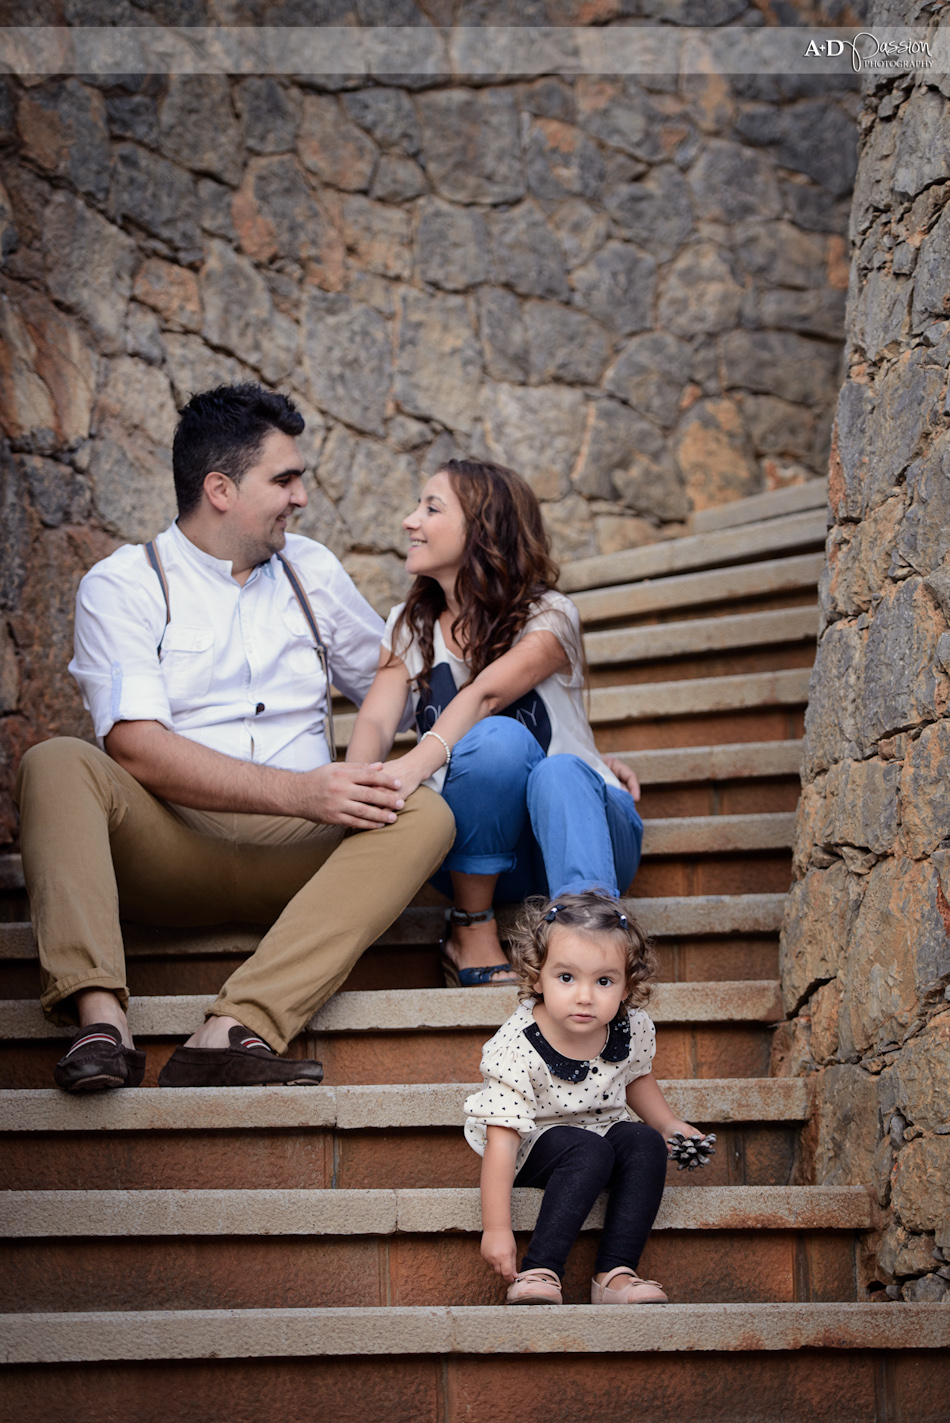 AD Passion Photography | fotograf-profesionist-nunta_fine-art-photography_location-based-photographer-family-photo-session-in-barcelona_0009 | Adelin, Dida, fotograf profesionist, fotograf de nunta, fotografie de nunta, fotograf Timisoara, fotograf Craiova, fotograf Bucuresti, fotograf Arad, nunta Timisoara, nunta Arad, nunta Bucuresti, nunta Craiova